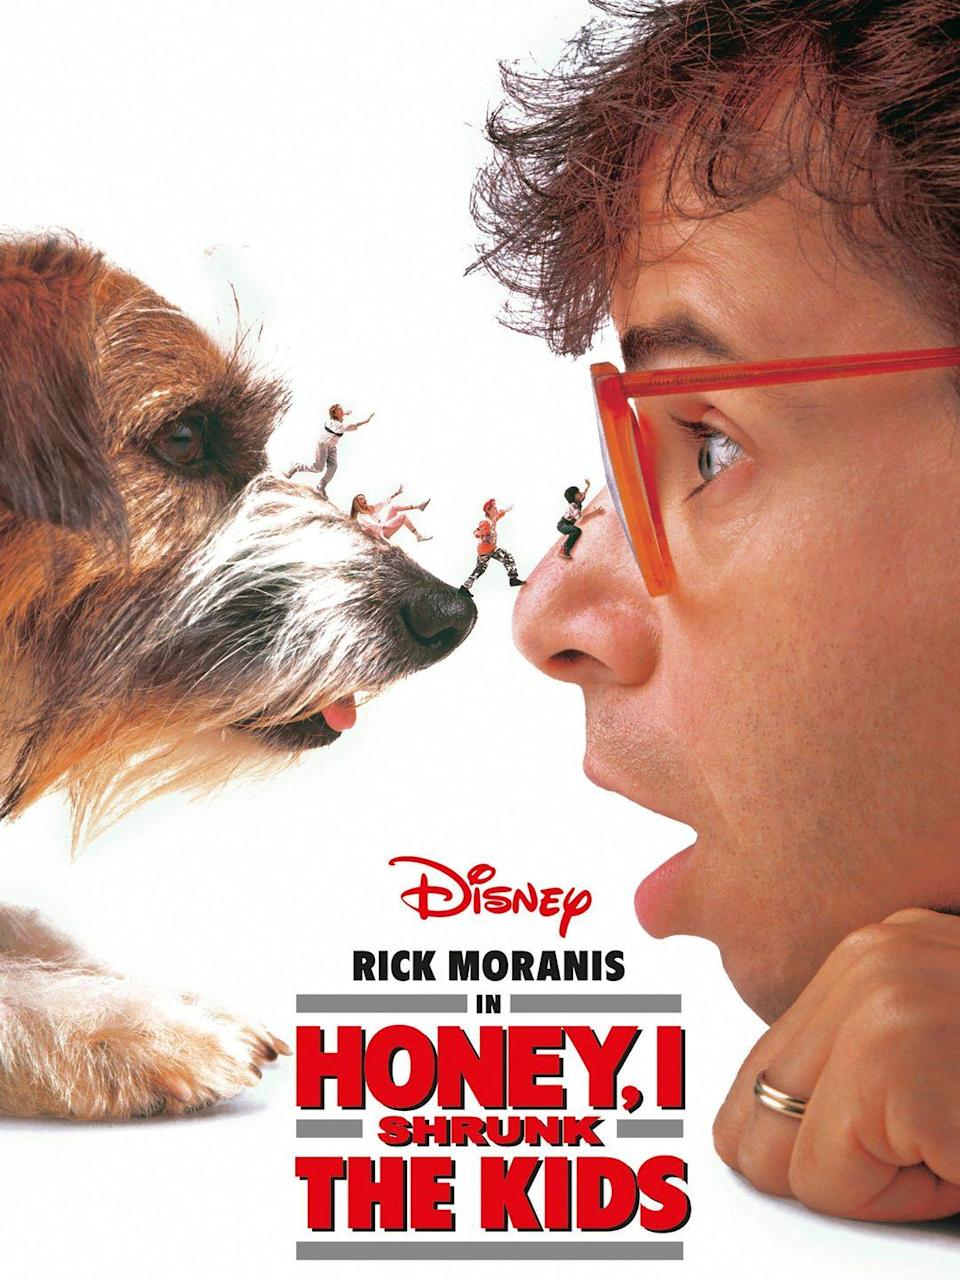 """<p><a class=""""link rapid-noclick-resp"""" href=""""https://www.amazon.com/Honey-Shrunk-Kids-Rick-Moranis/dp/B00787IR2Q/?tag=syn-yahoo-20&ascsubtag=%5Bartid%7C10063.g.36700668%5Bsrc%7Cyahoo-us"""" rel=""""nofollow noopener"""" target=""""_blank"""" data-ylk=""""slk:Watch Now"""">Watch Now</a></p><p>When an inventor accidentally resizes his children and his neighbor's children with a shrinking machine and throws the teeny-tiny youth into the trash (also an accident), the group must fend for themselves against scary things like sprinklers, ants, and a scorpion.</p>"""